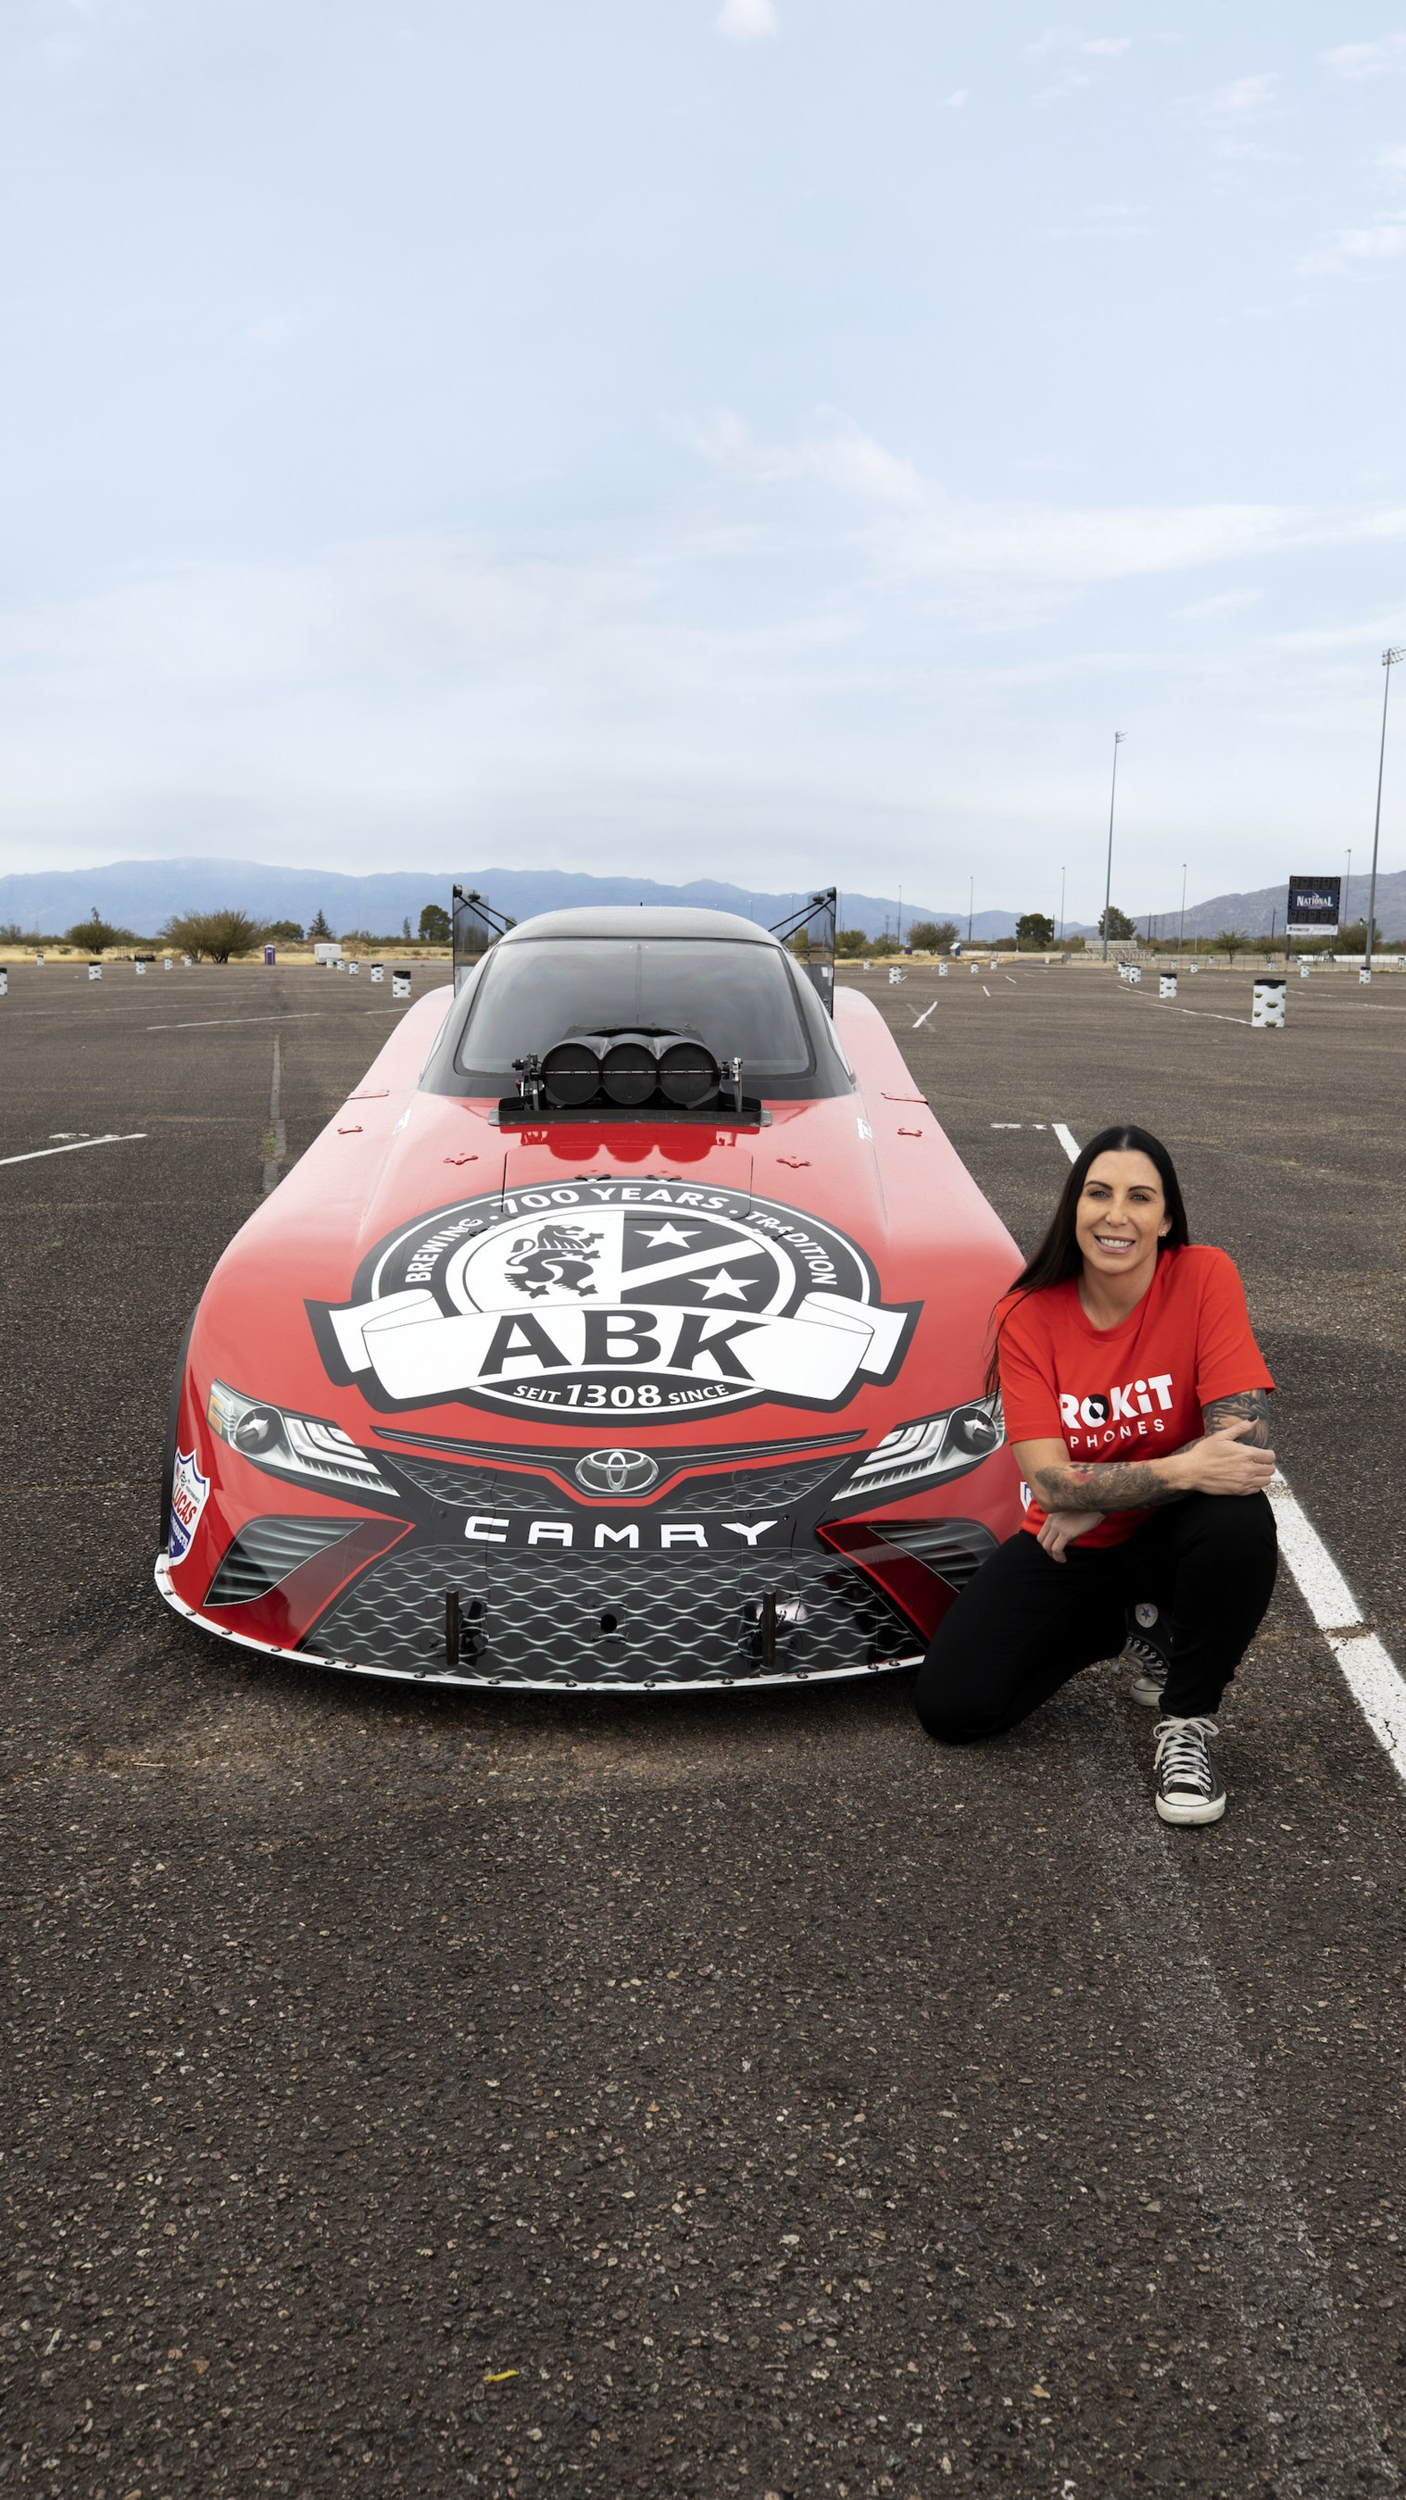 Alexis DeJoria returns to Drag Racing This Season and Announces Two Major New Sponsors, ROKiT Phones and ABK Beer.